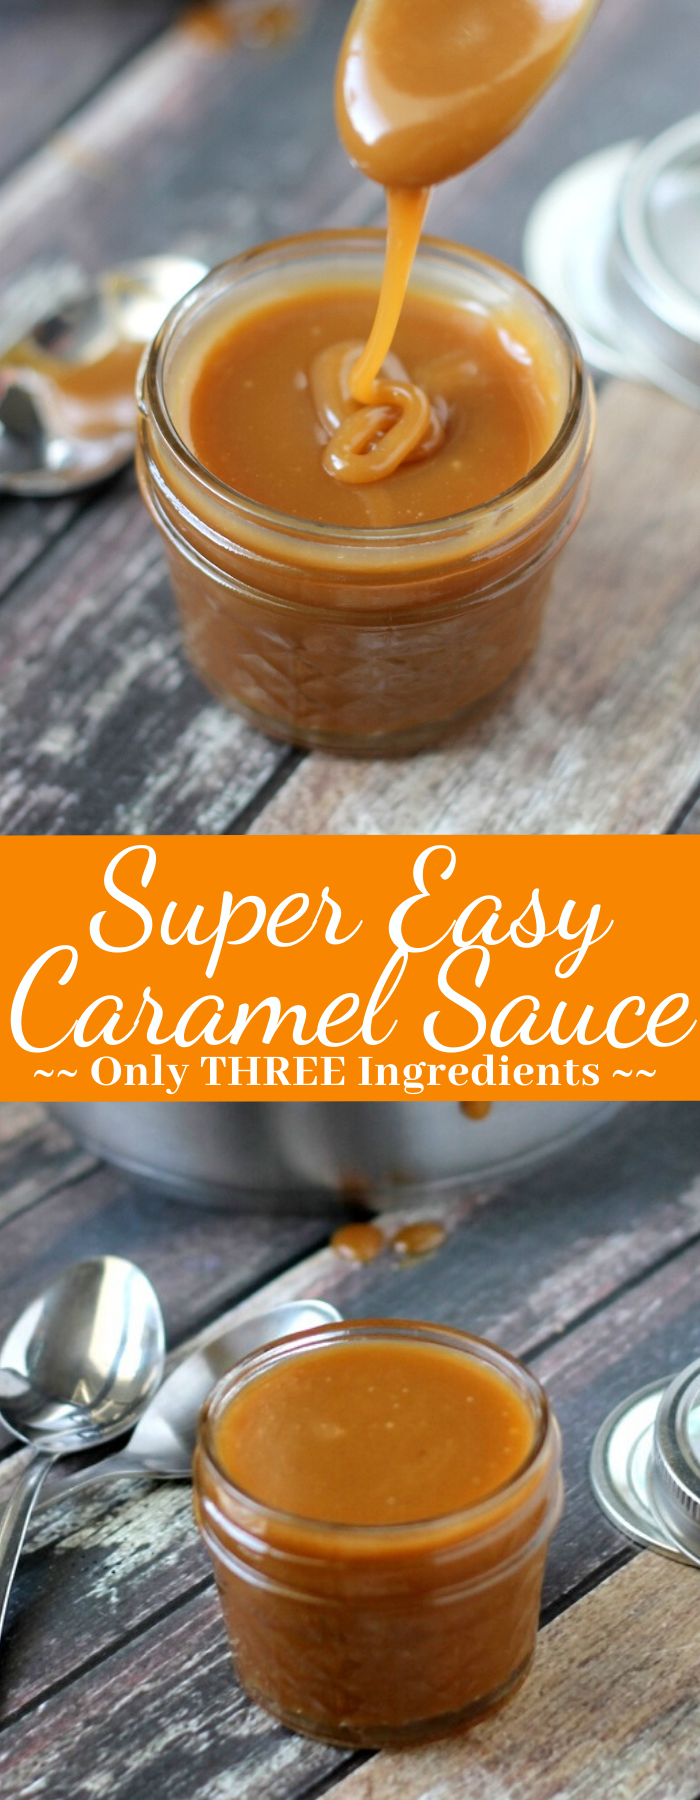 Easy Caramel Sauce 3 Ingredients Domestic Superhero